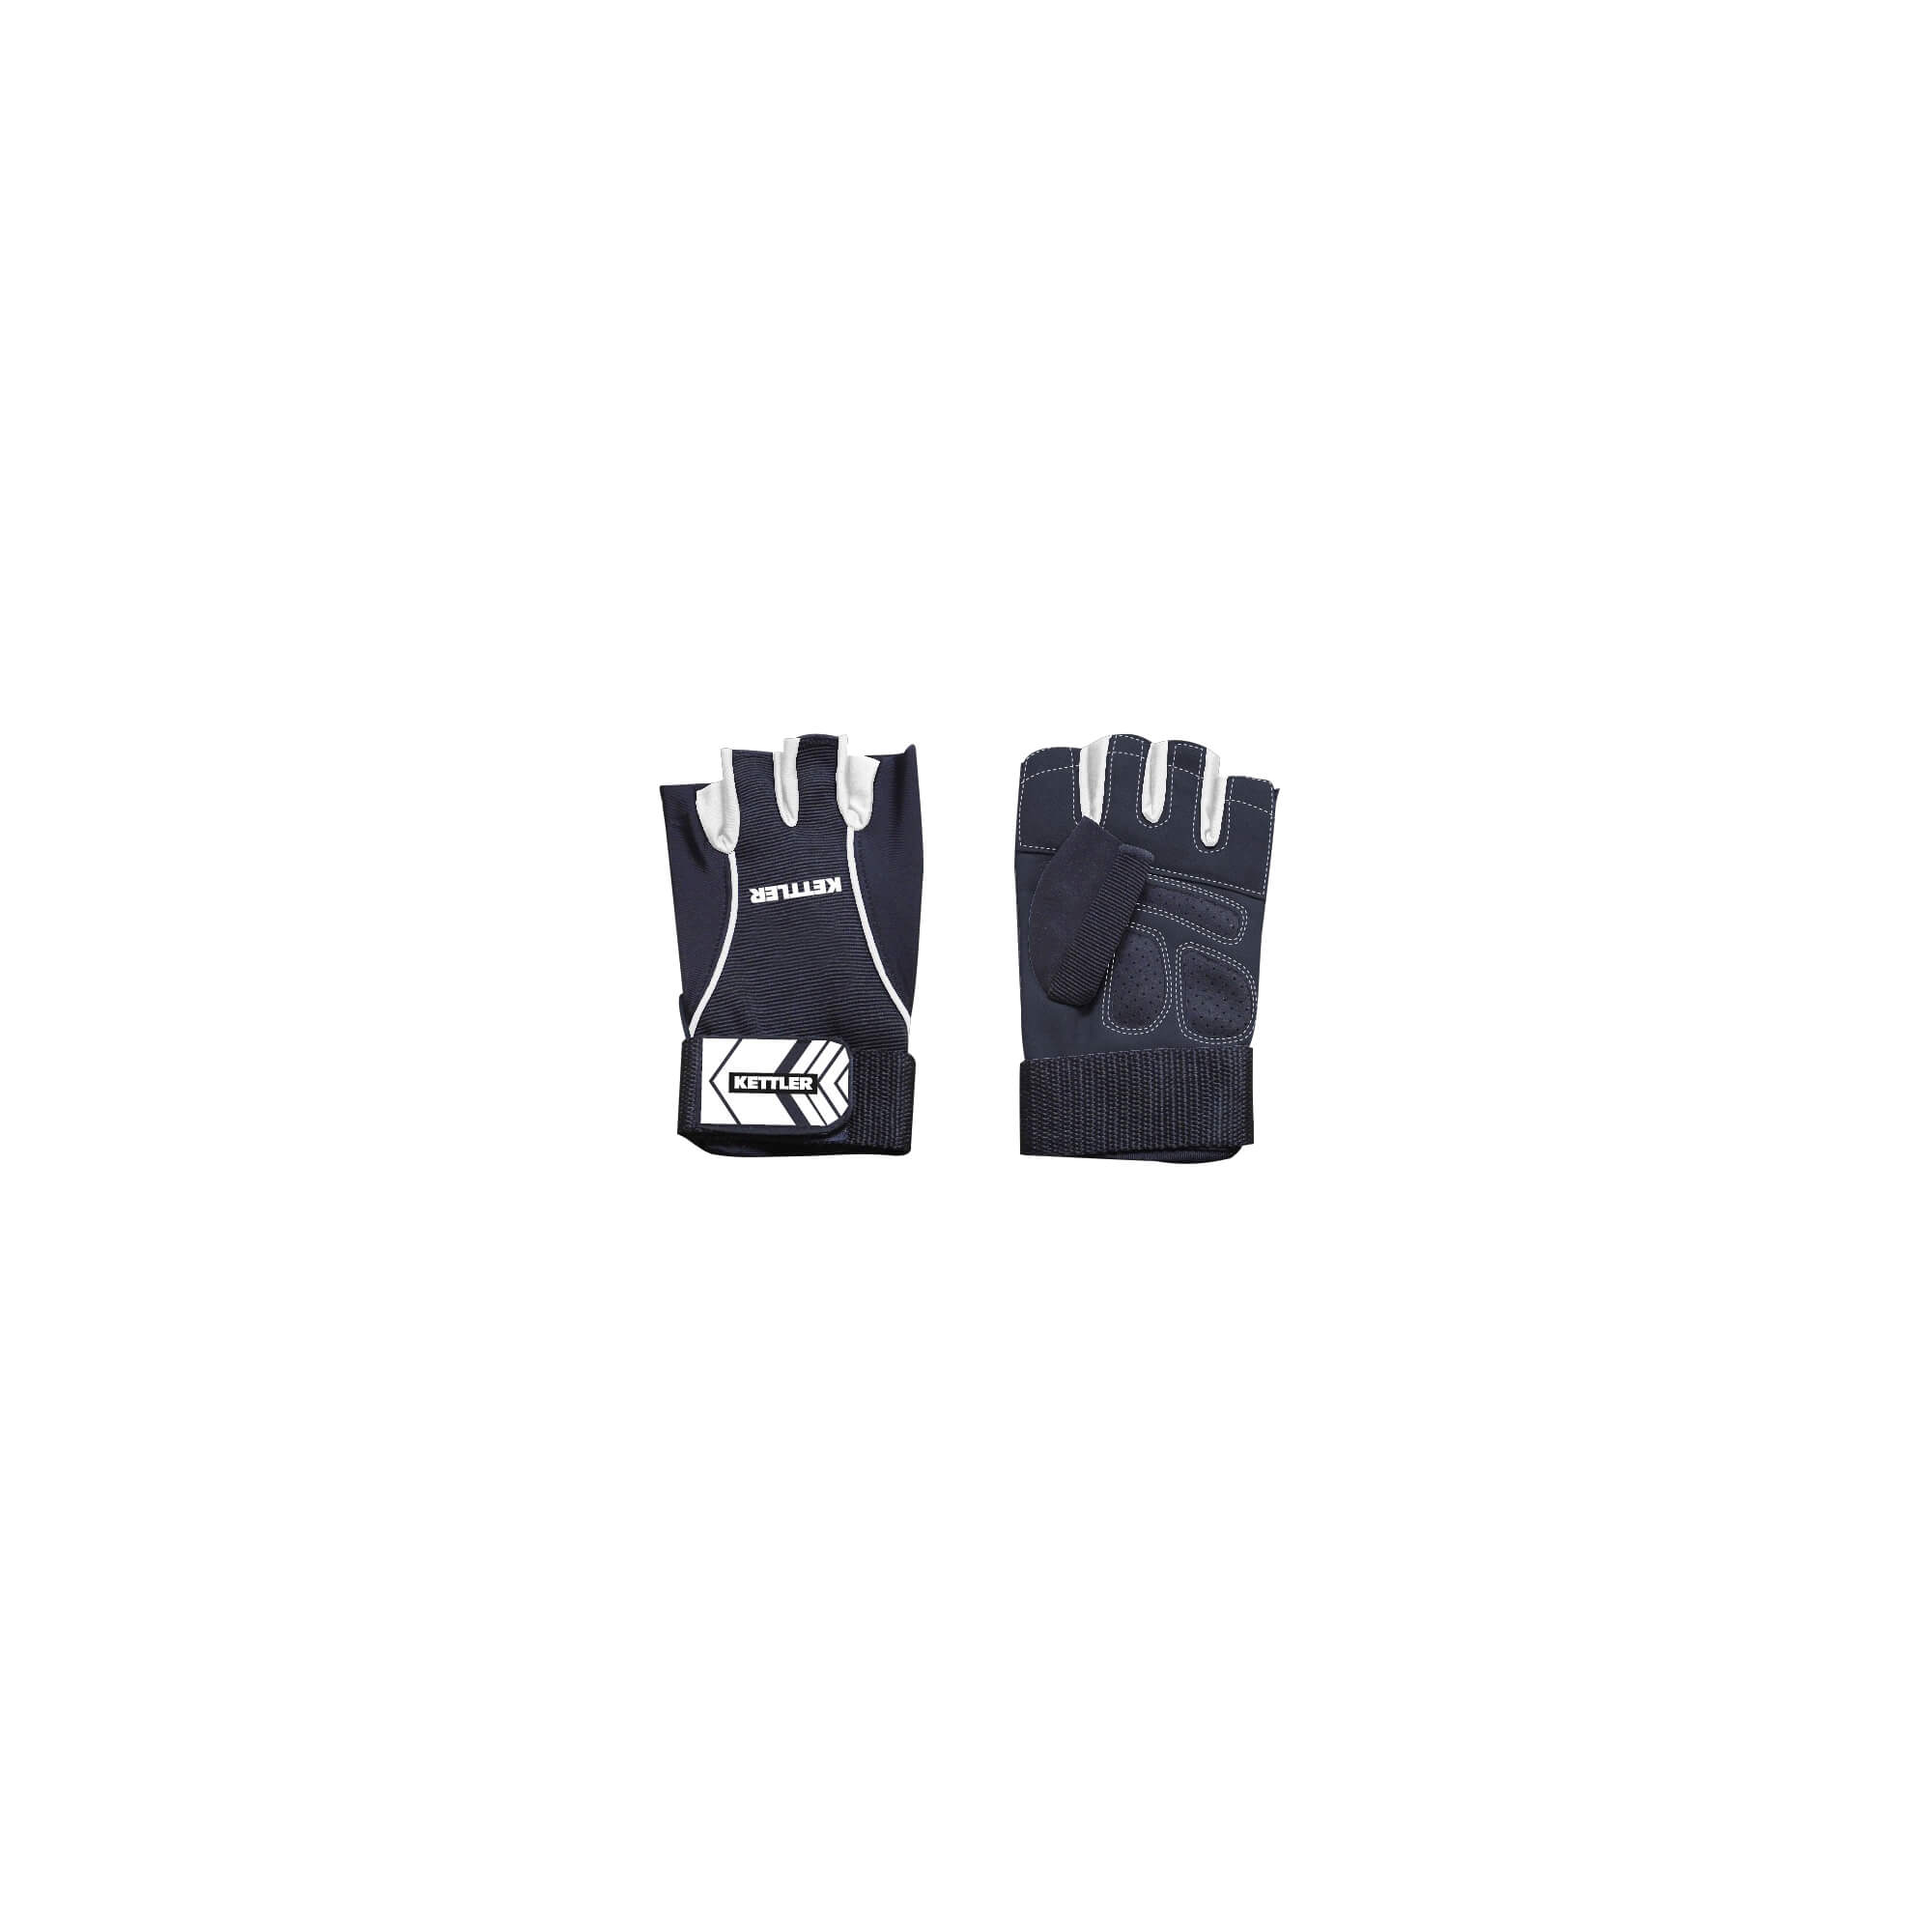 Traing gloves Basic Men imagine